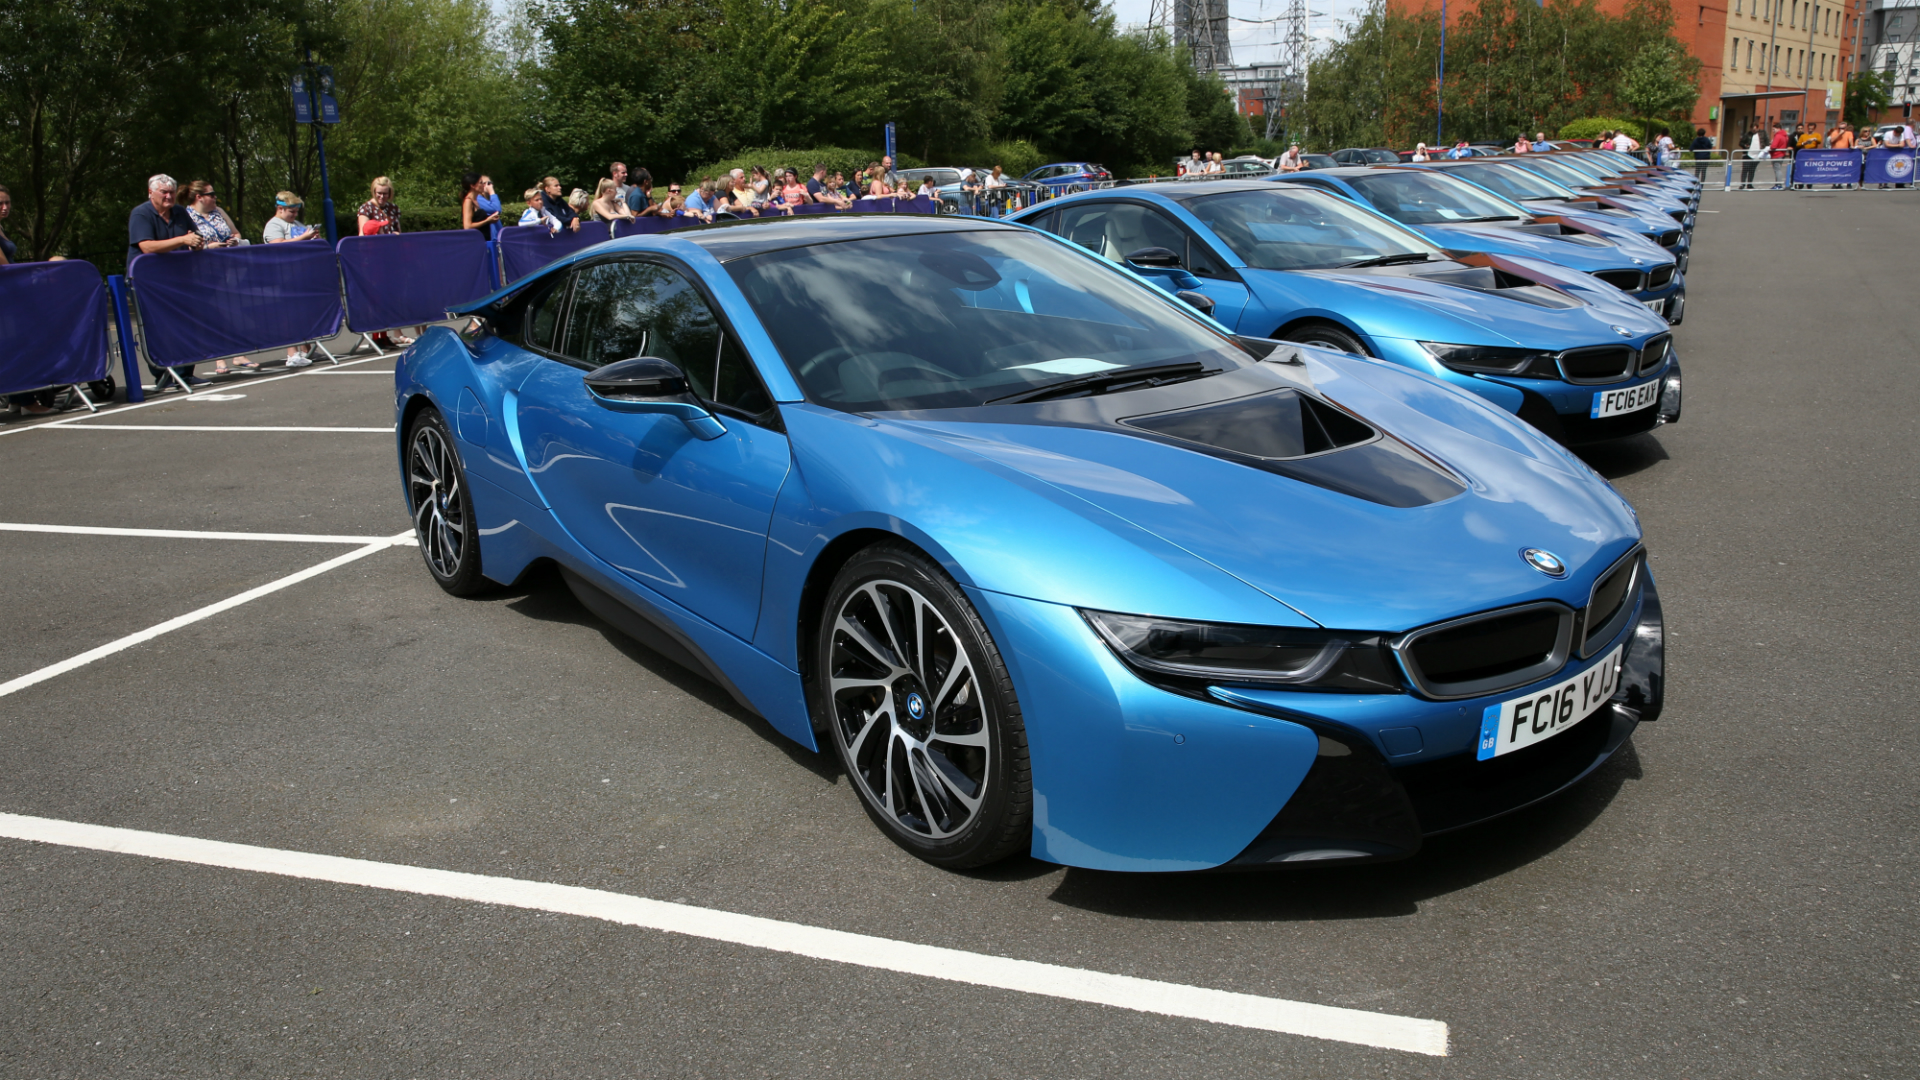 Leicester City S Premier League Winners Gifted Bmw I8s Goal Com